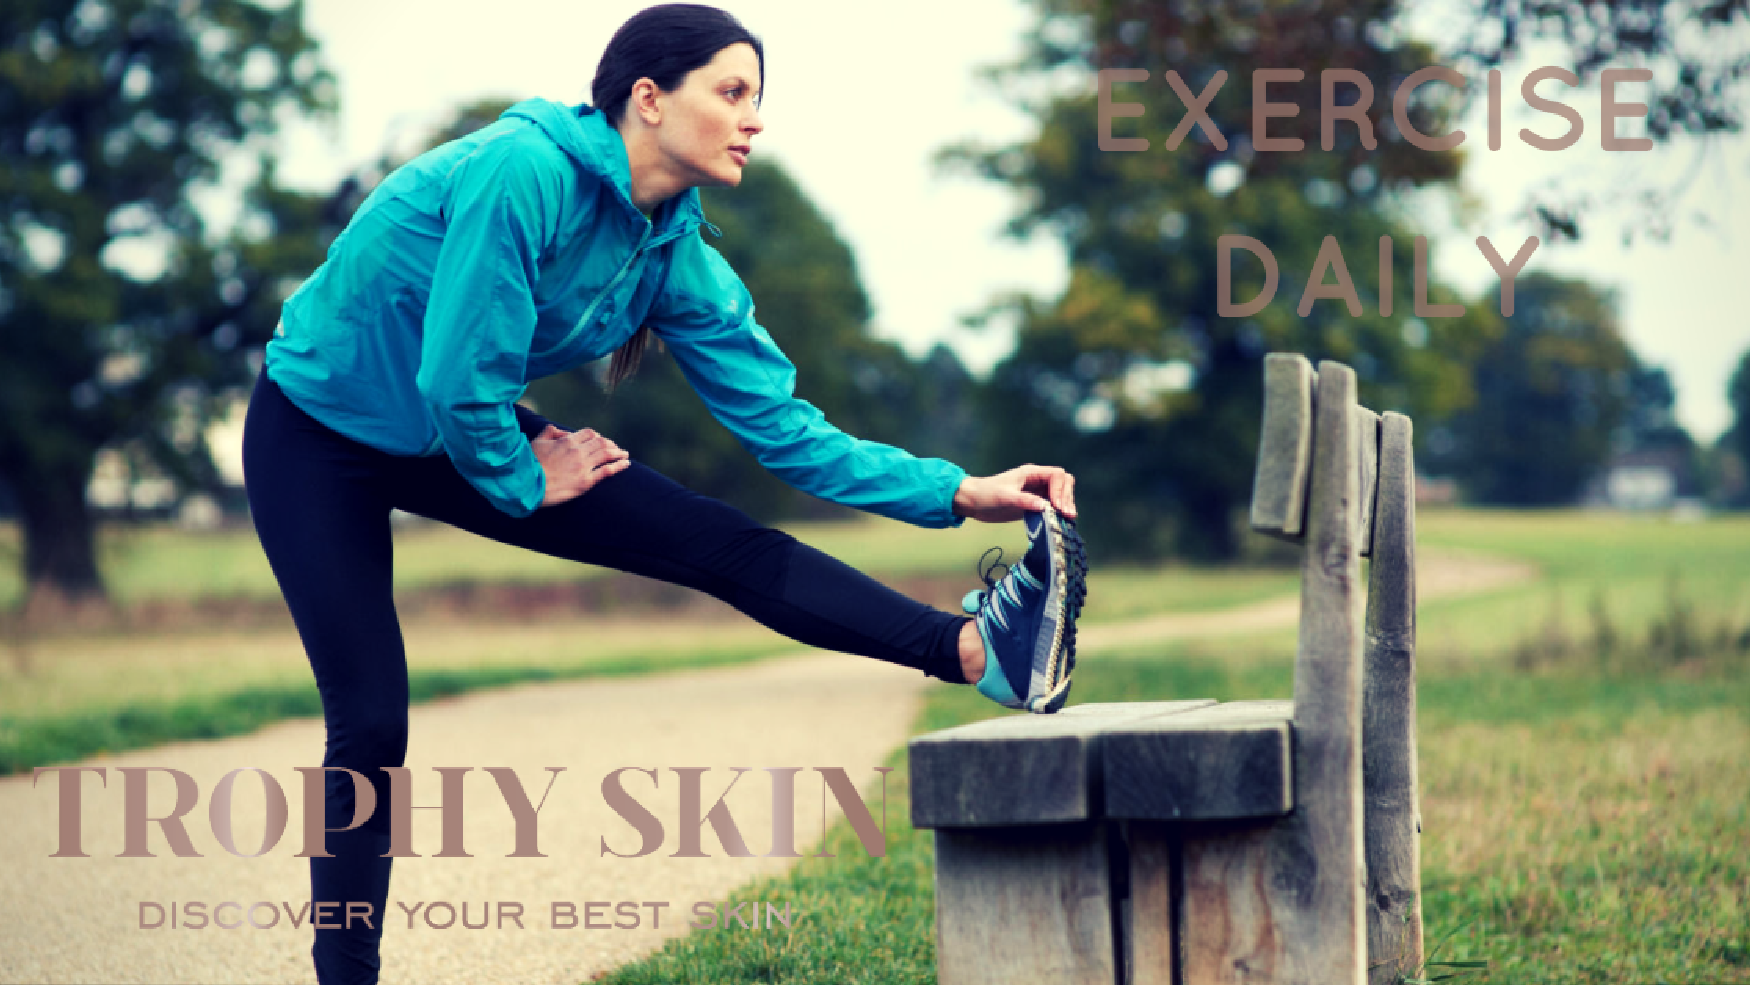 Exercise daily to improve health and skin